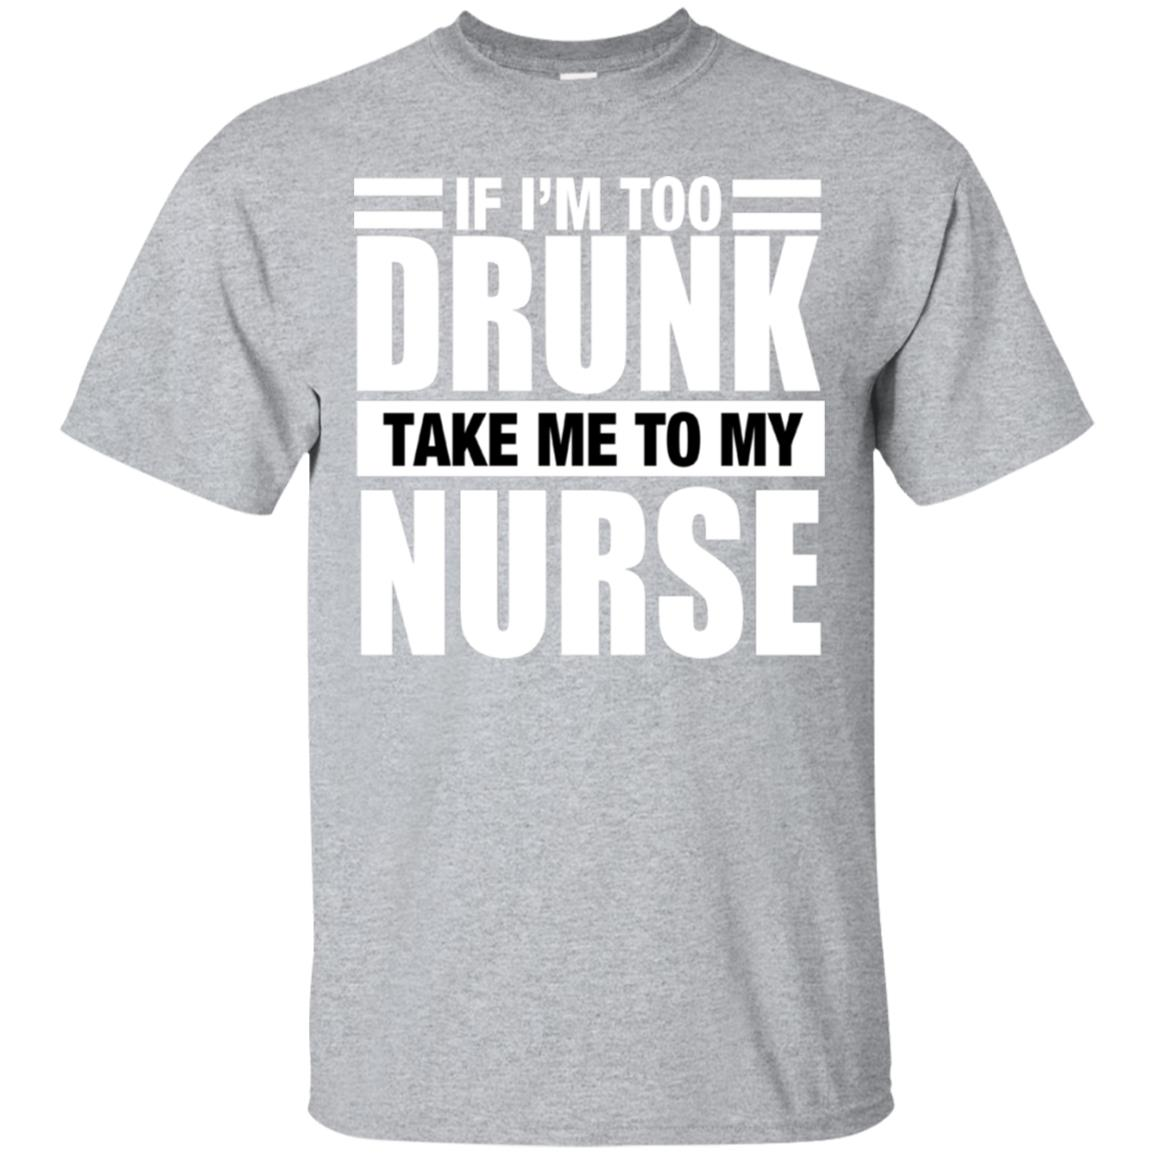 If I'm Too Drunk Take Me To My Nurse T-shirt 99promocode